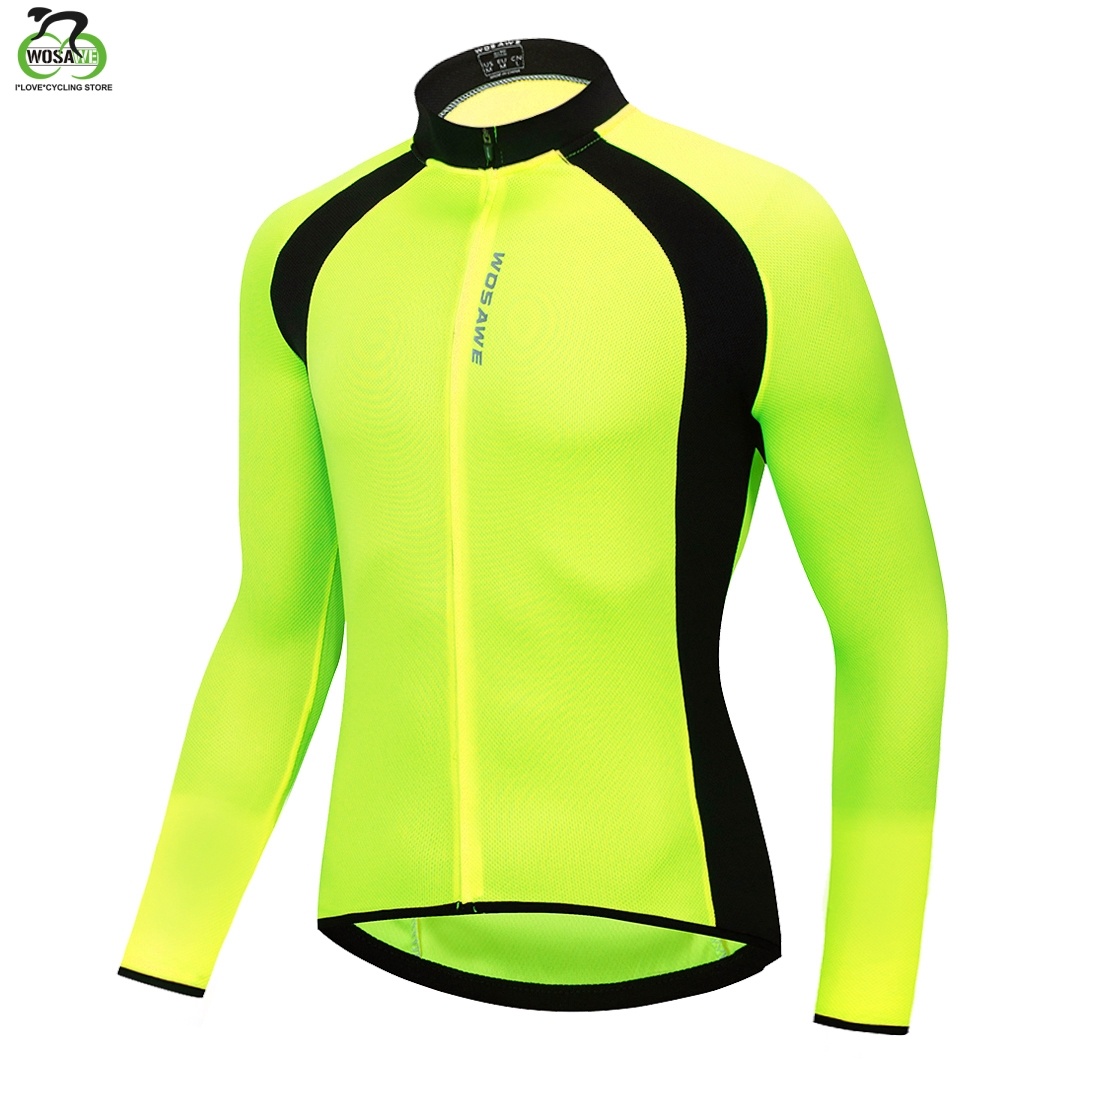 WOSAWE Breathable Mesh Fabric Cycling Jacket Full Zipper Chaqueta Back Pockets Reflective Running Fluorescent Sports Bike Jacket